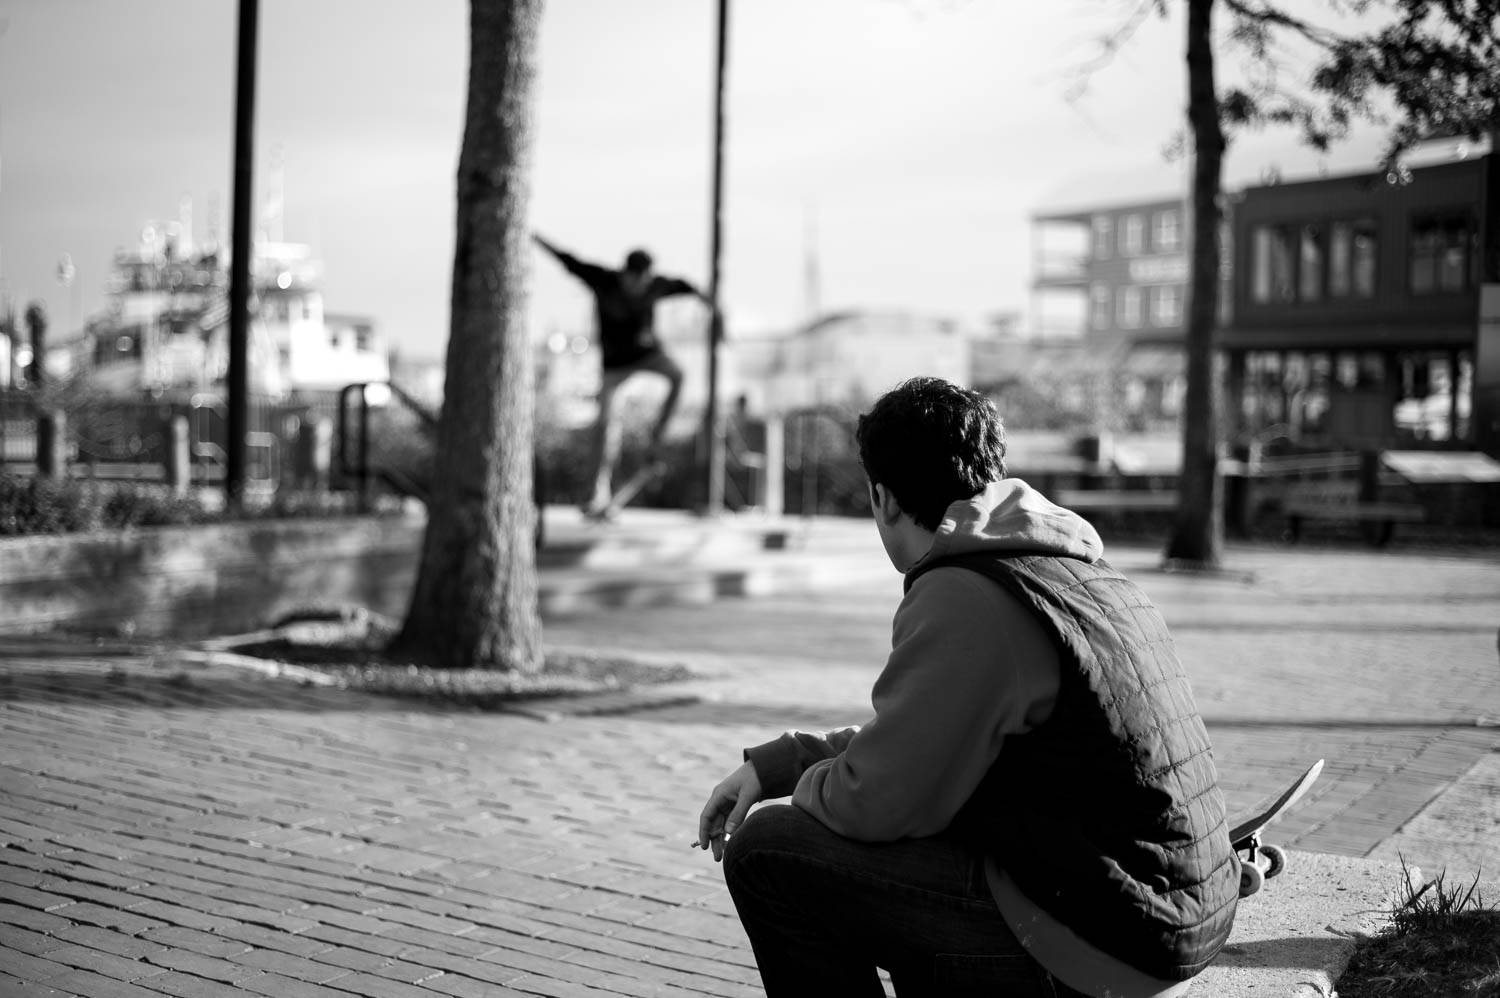 A skateboarder smoking a cigarette with his friend skateboarding in the background behind him